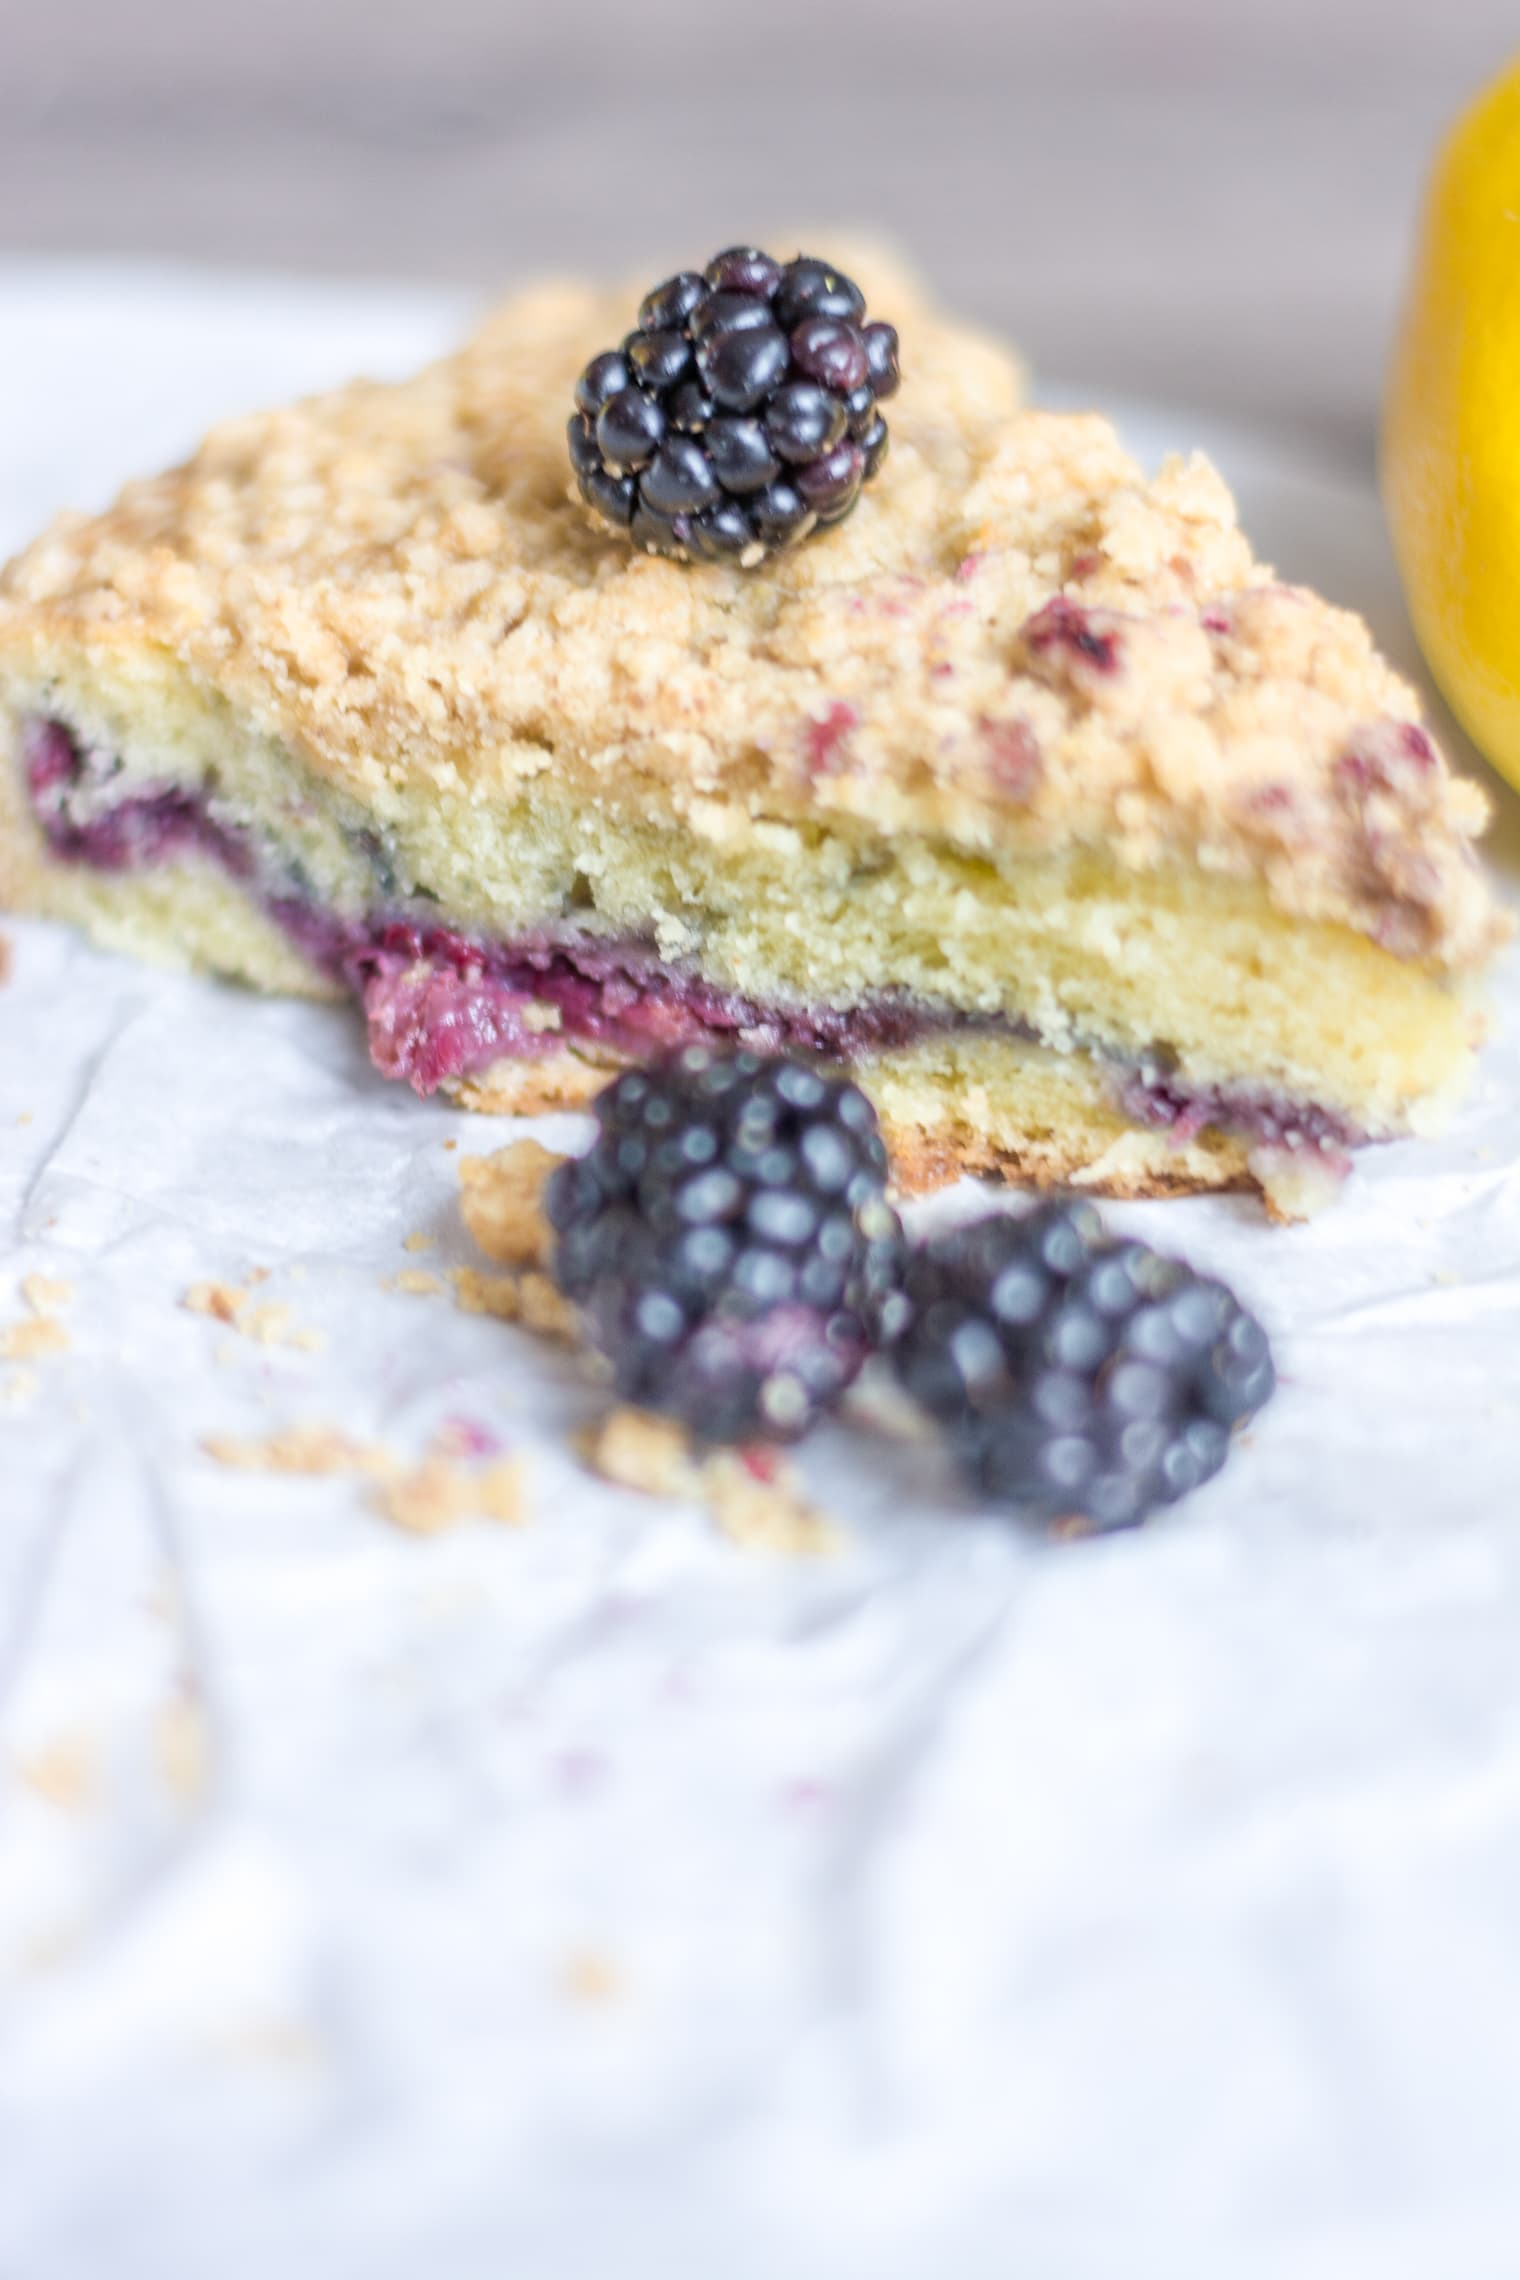 lemon crumb cake recipe // blackberry lemon cake // blackberry cake filling